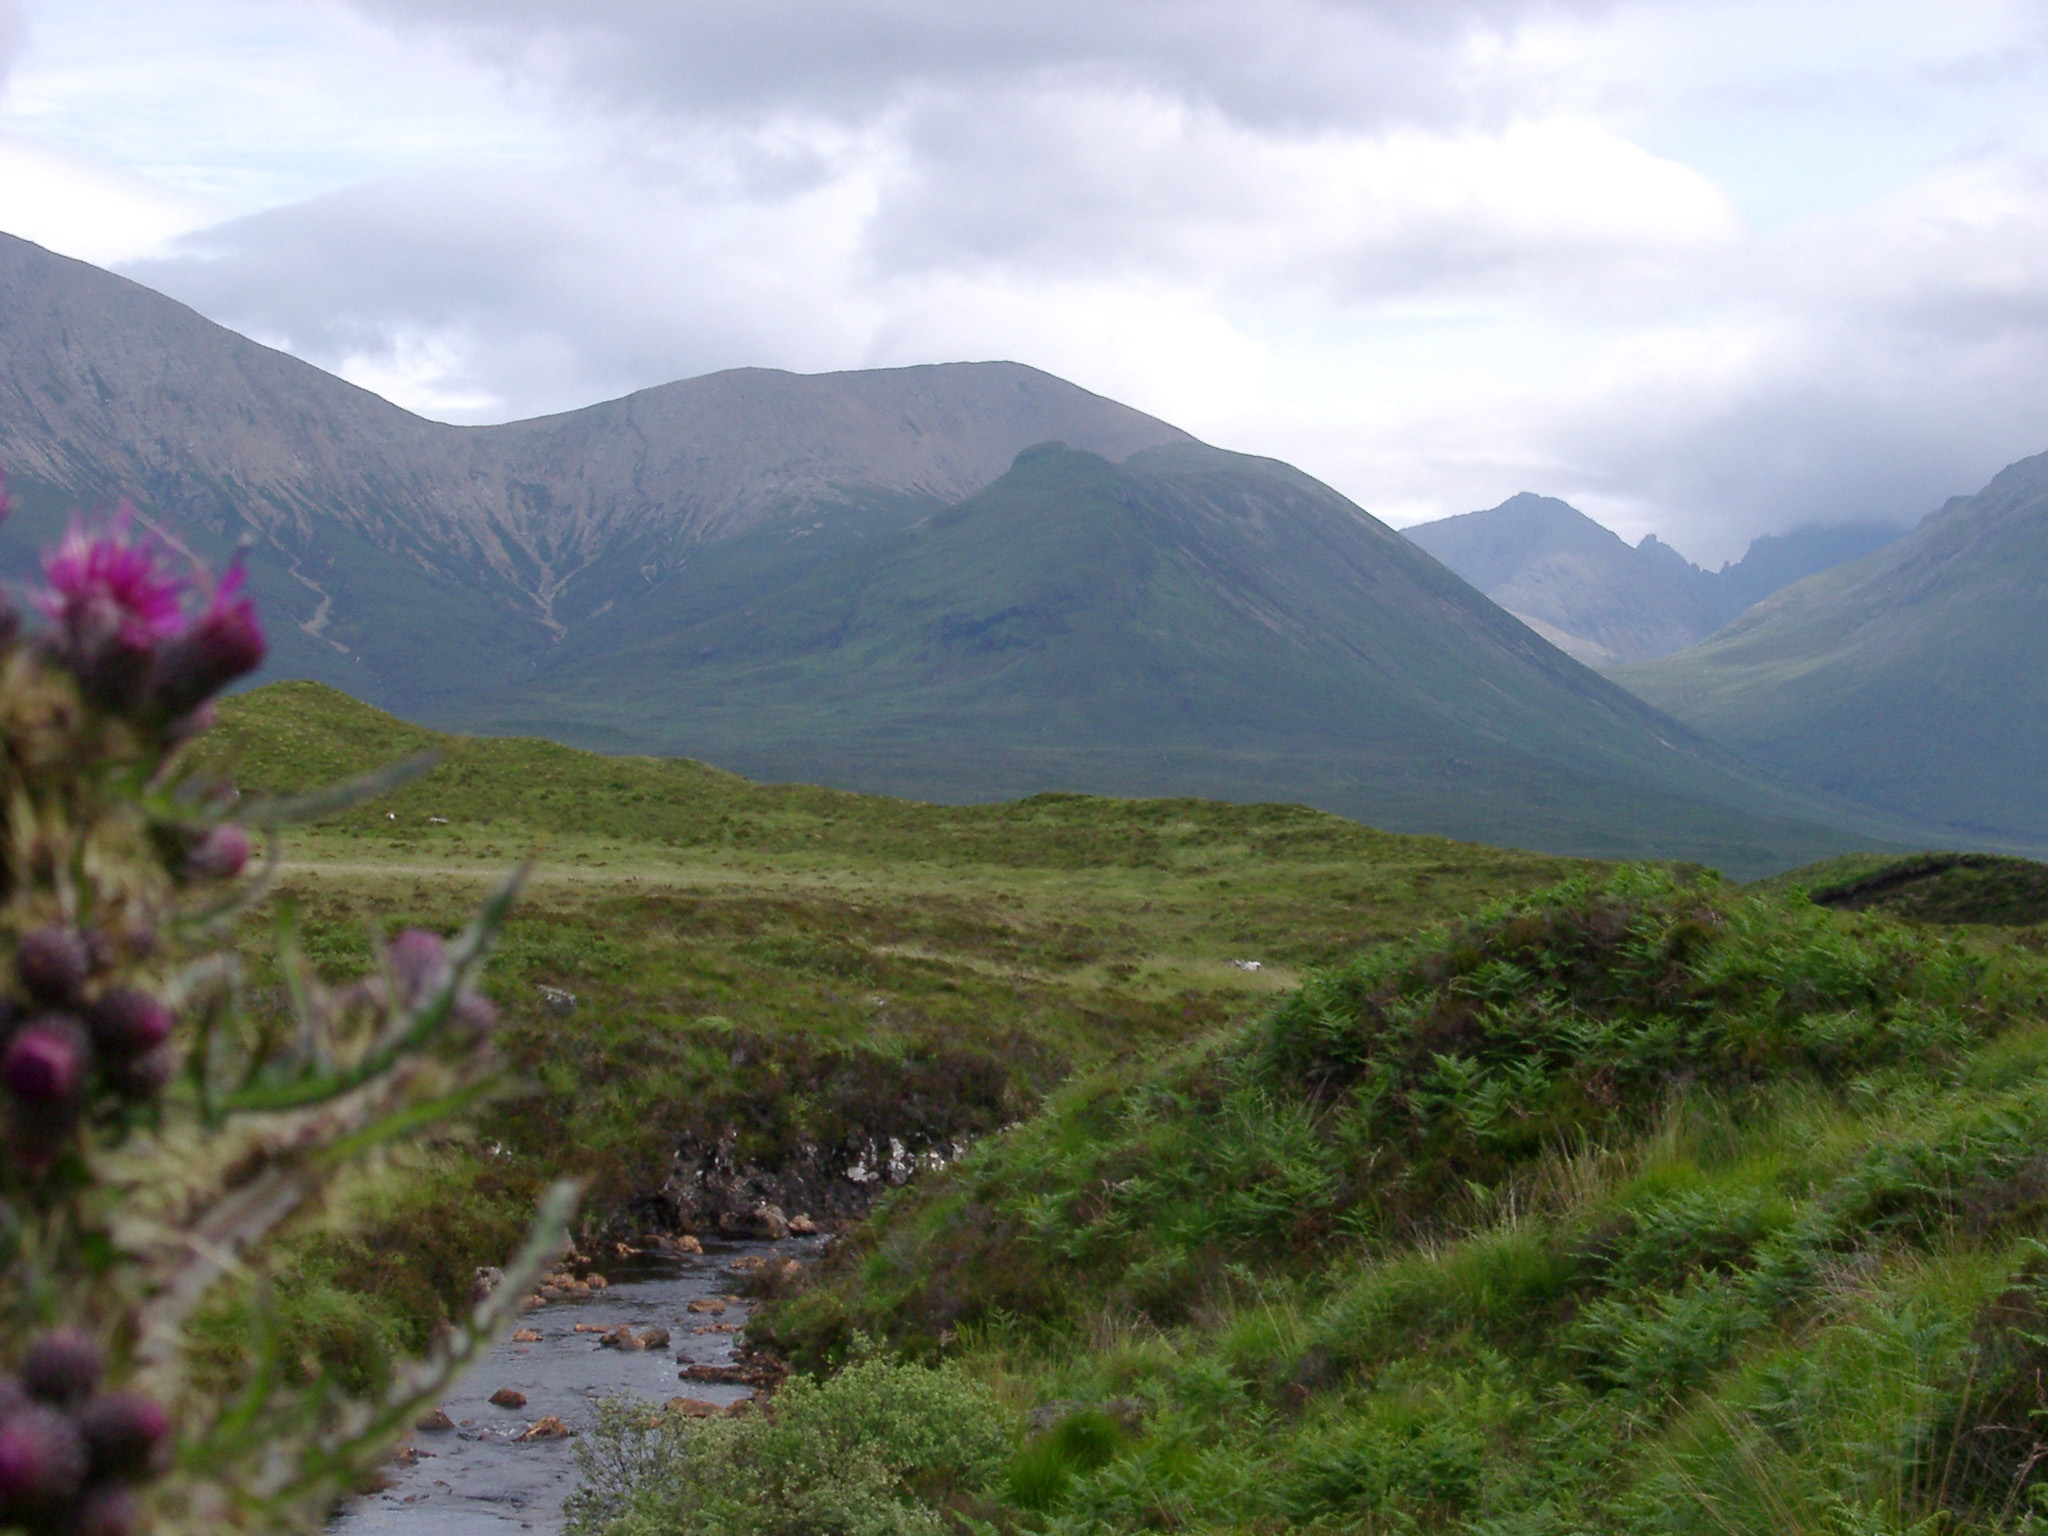 Scottish thistle flowering alongside a meandering stream in the misty mountains of the Scottish Highlands